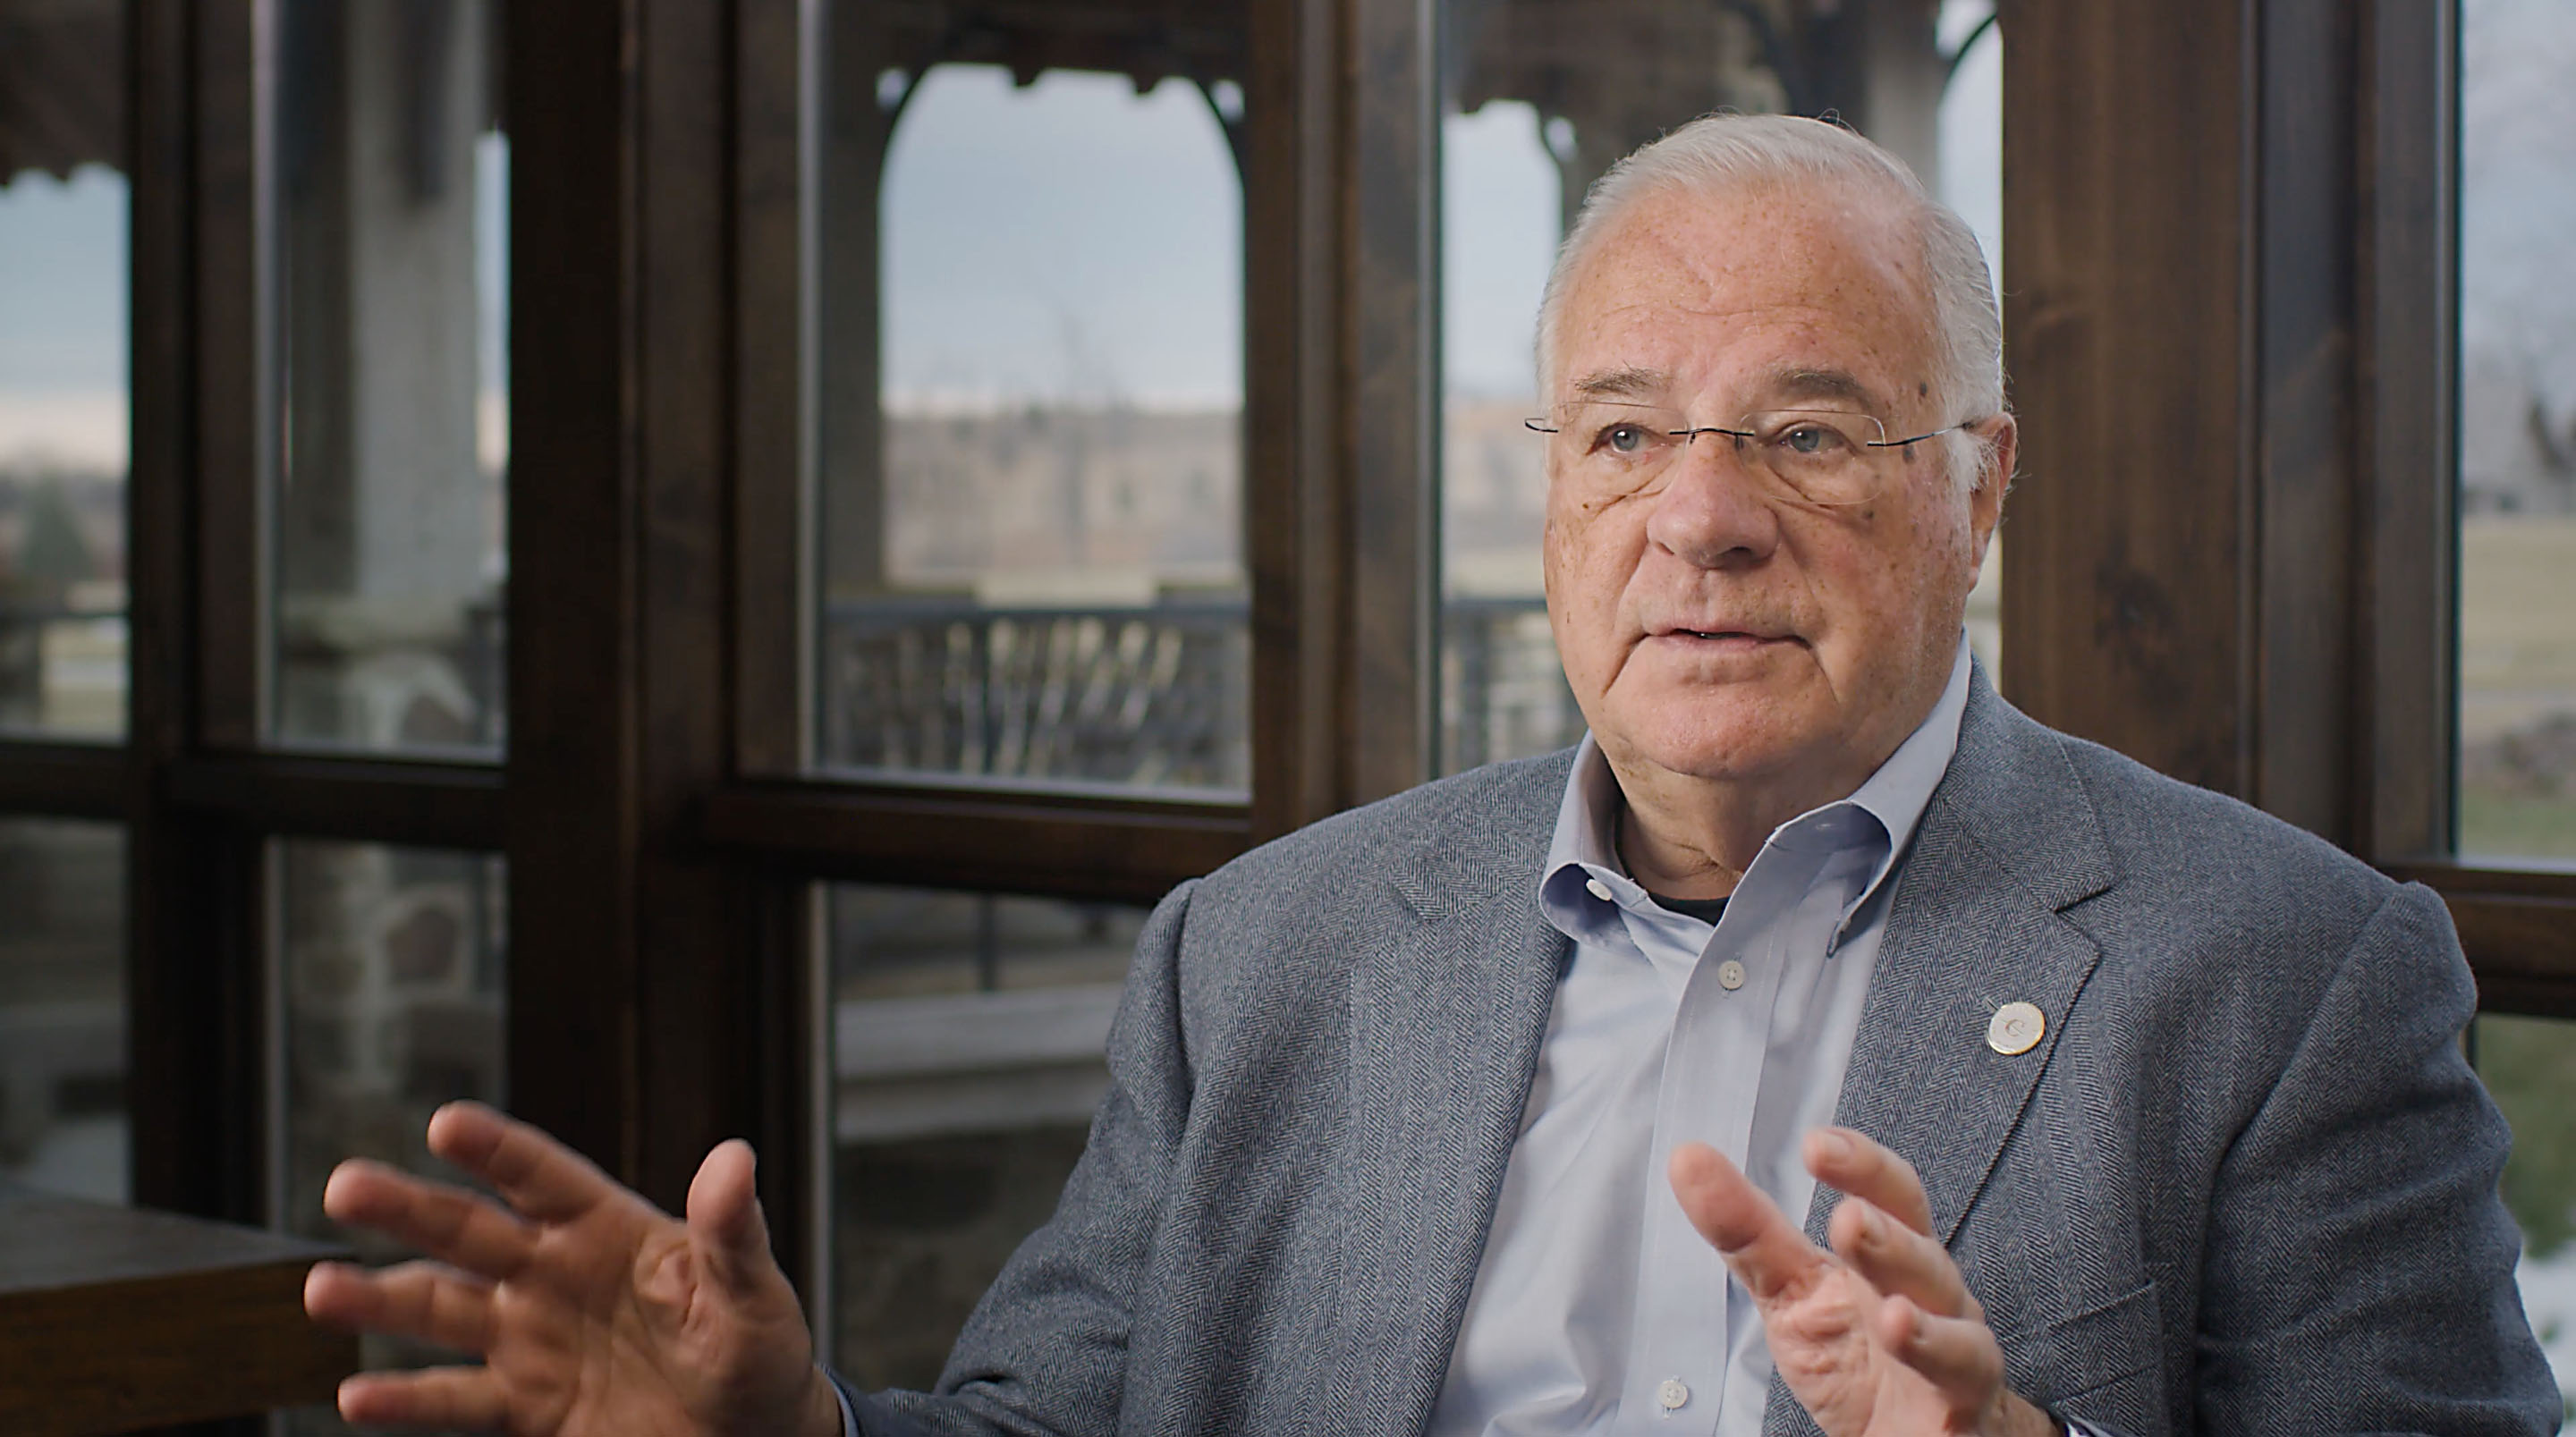 Joe Ricketts discusses his perspectives on education.